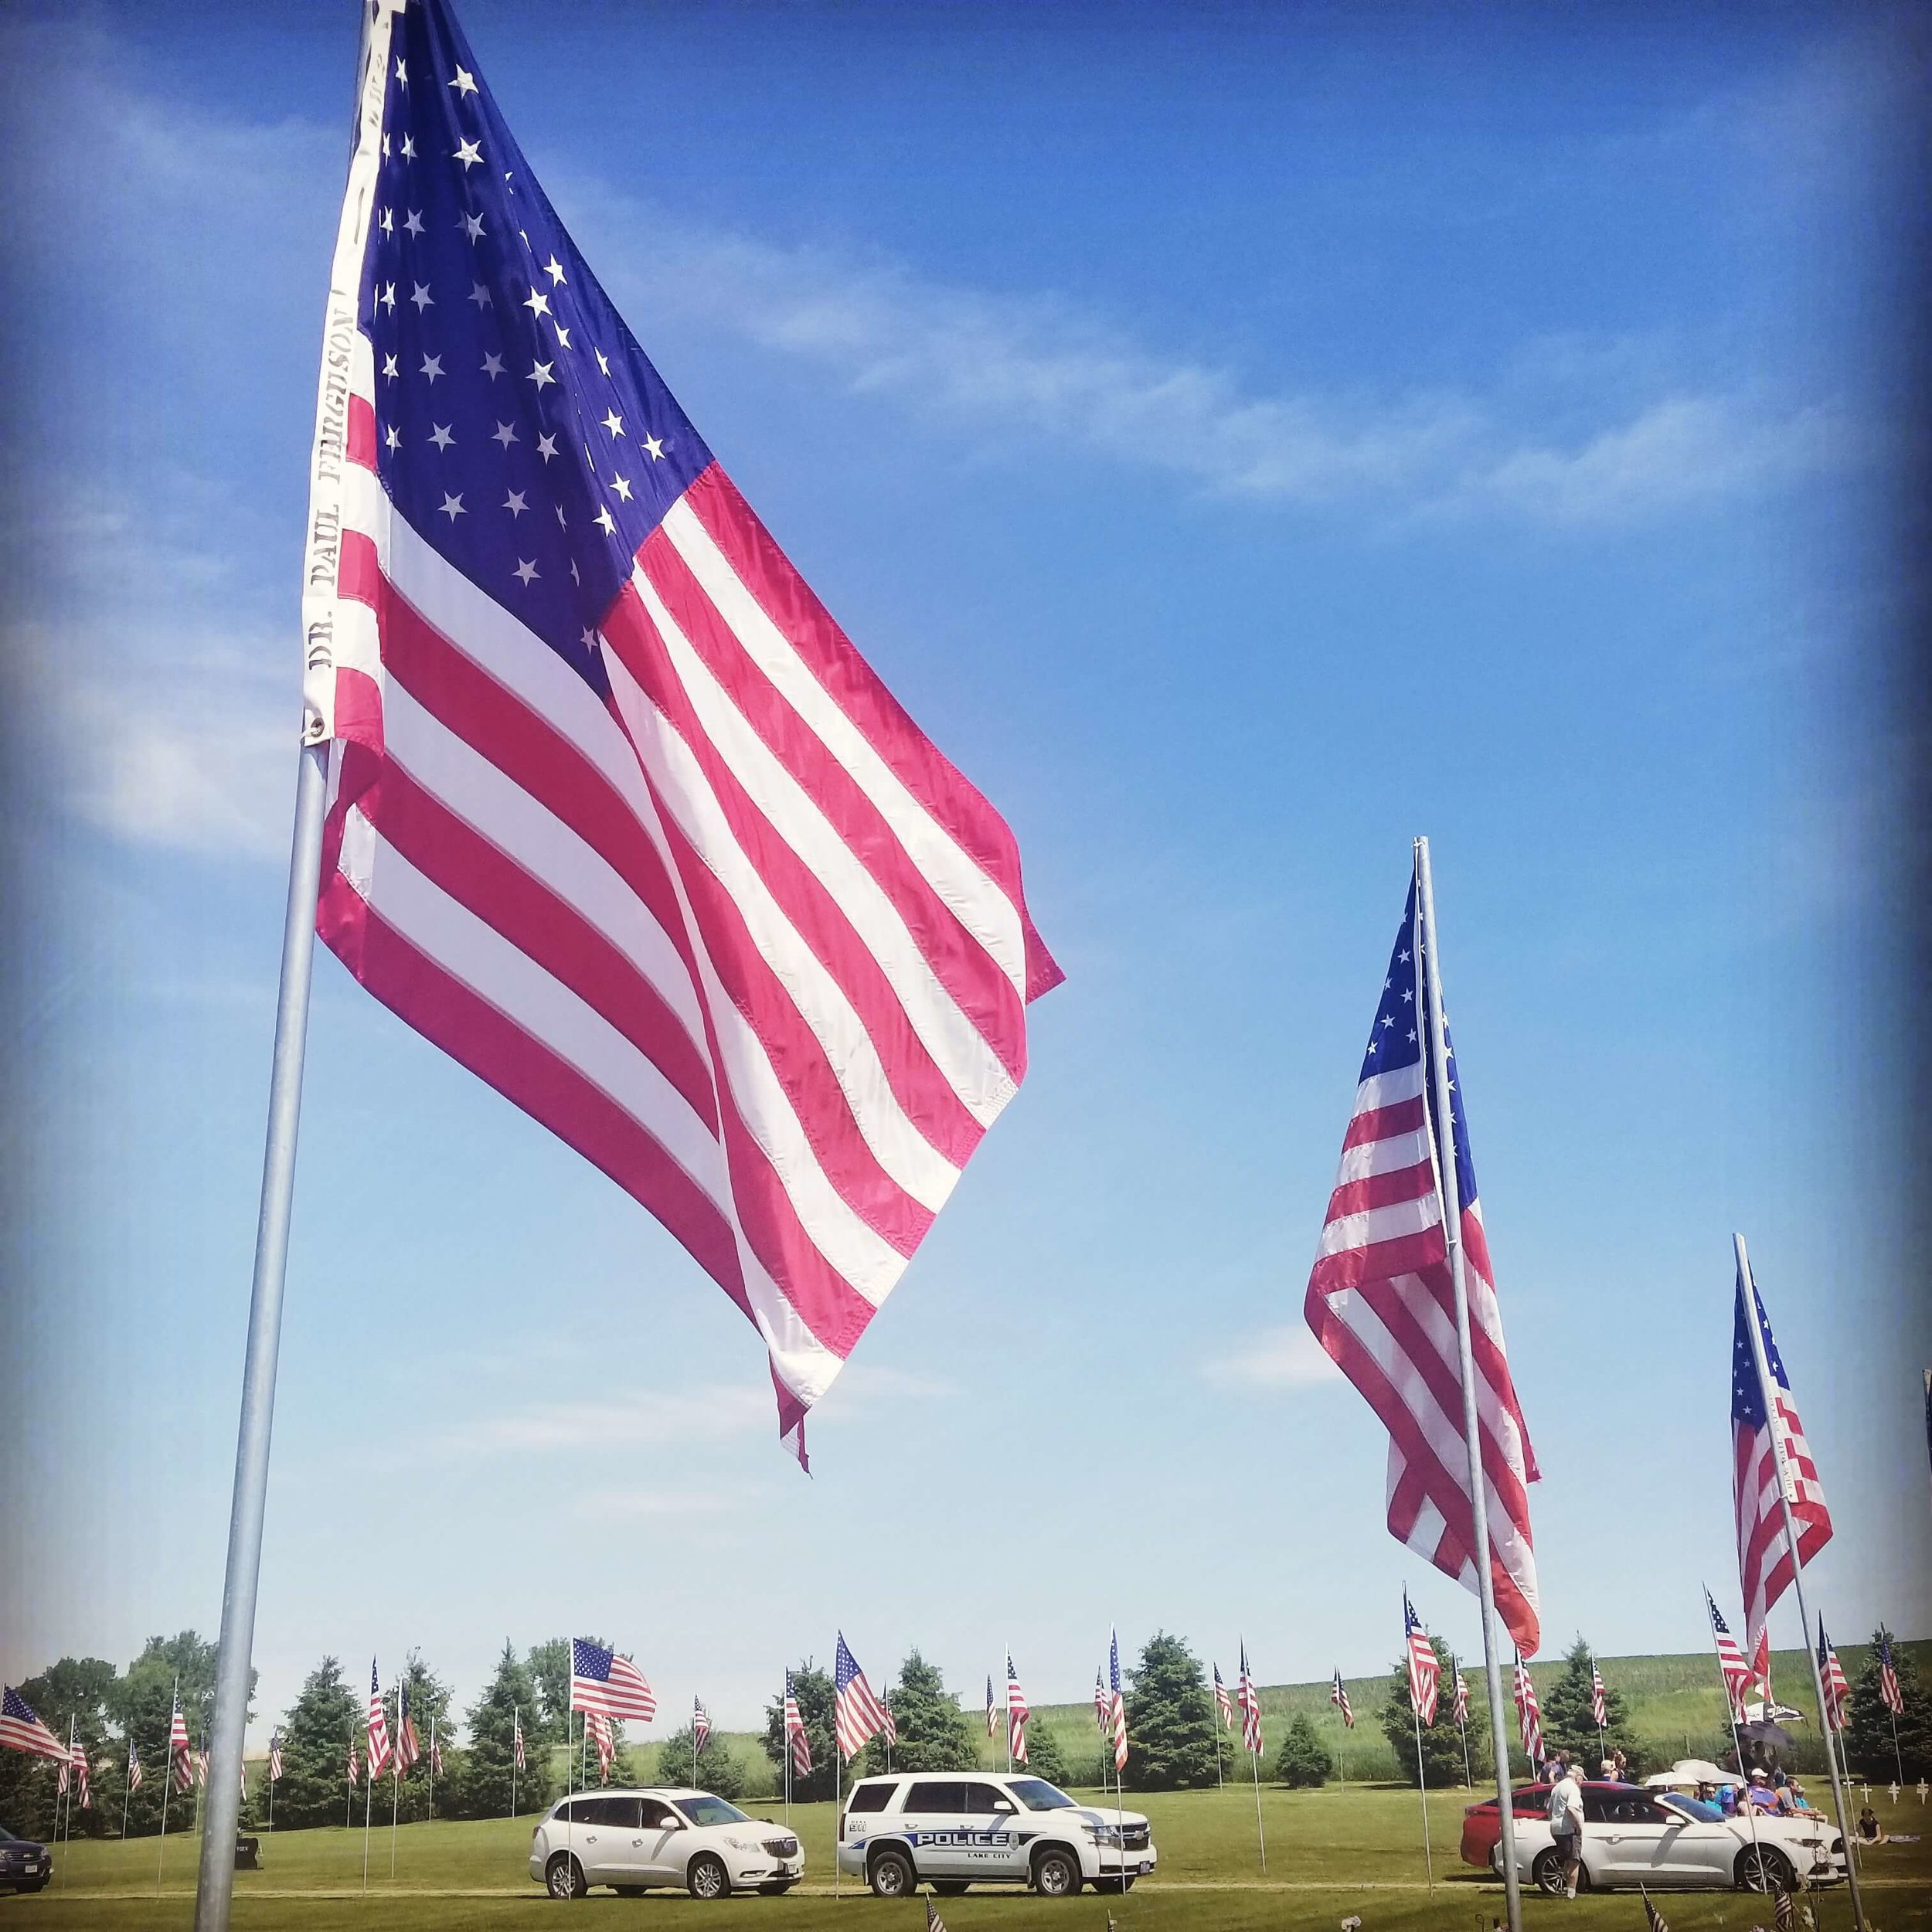 Flags displayed at the Memorial Day ceremony honor veterans Darcy knew personally, like this one for Dr. Paul Ferguson.